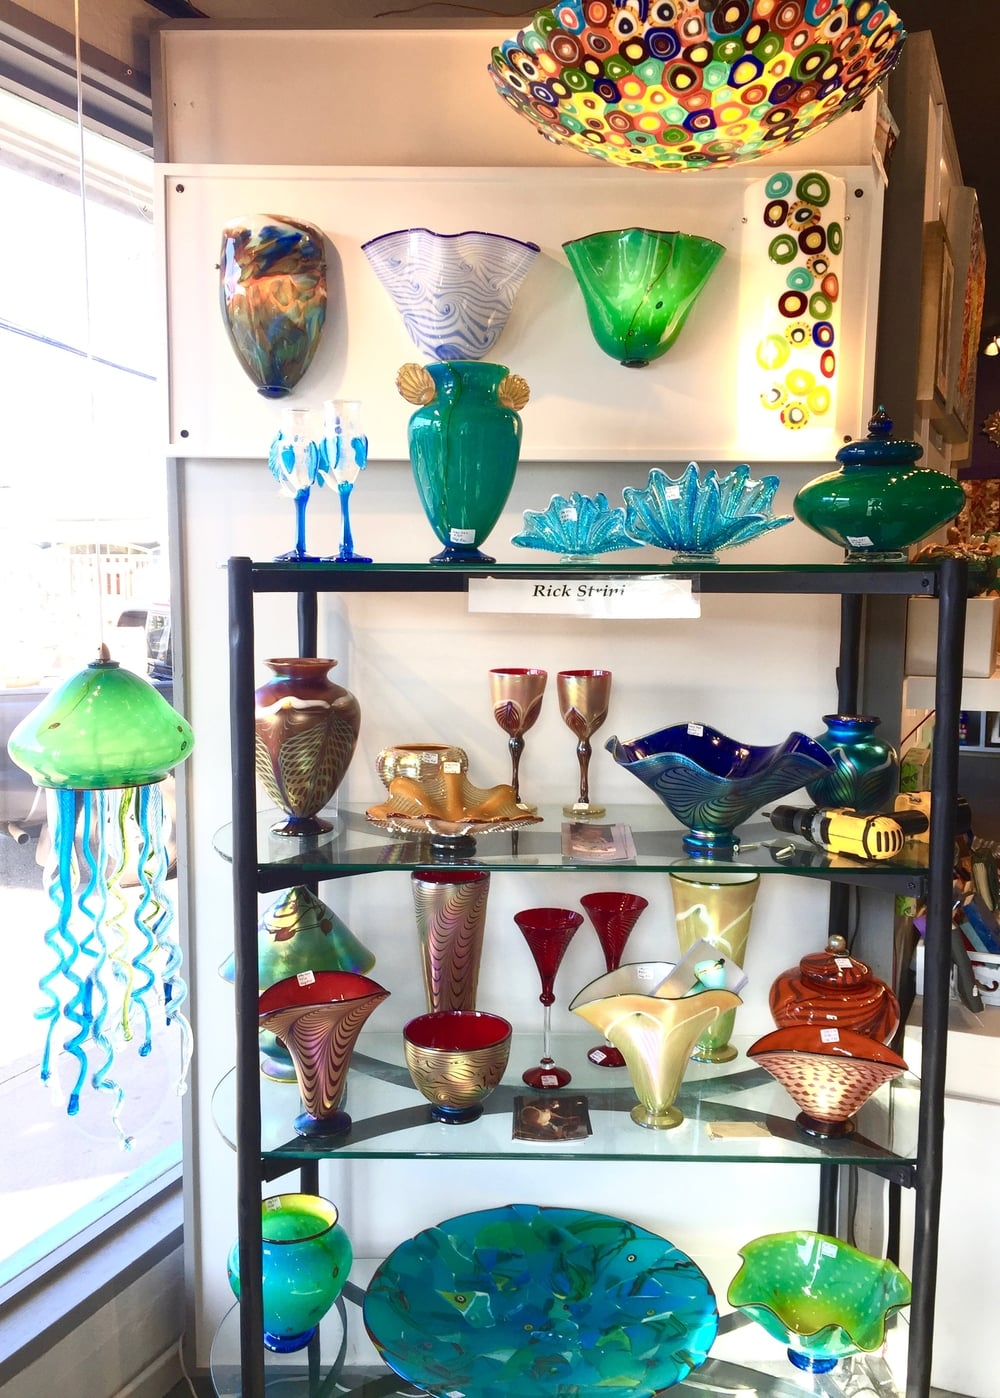 Fresh new display for our upcoming season here at the Maui Crafts Guild, Paia. Maui. 2016artist Rick Strini, Strini Art Glass